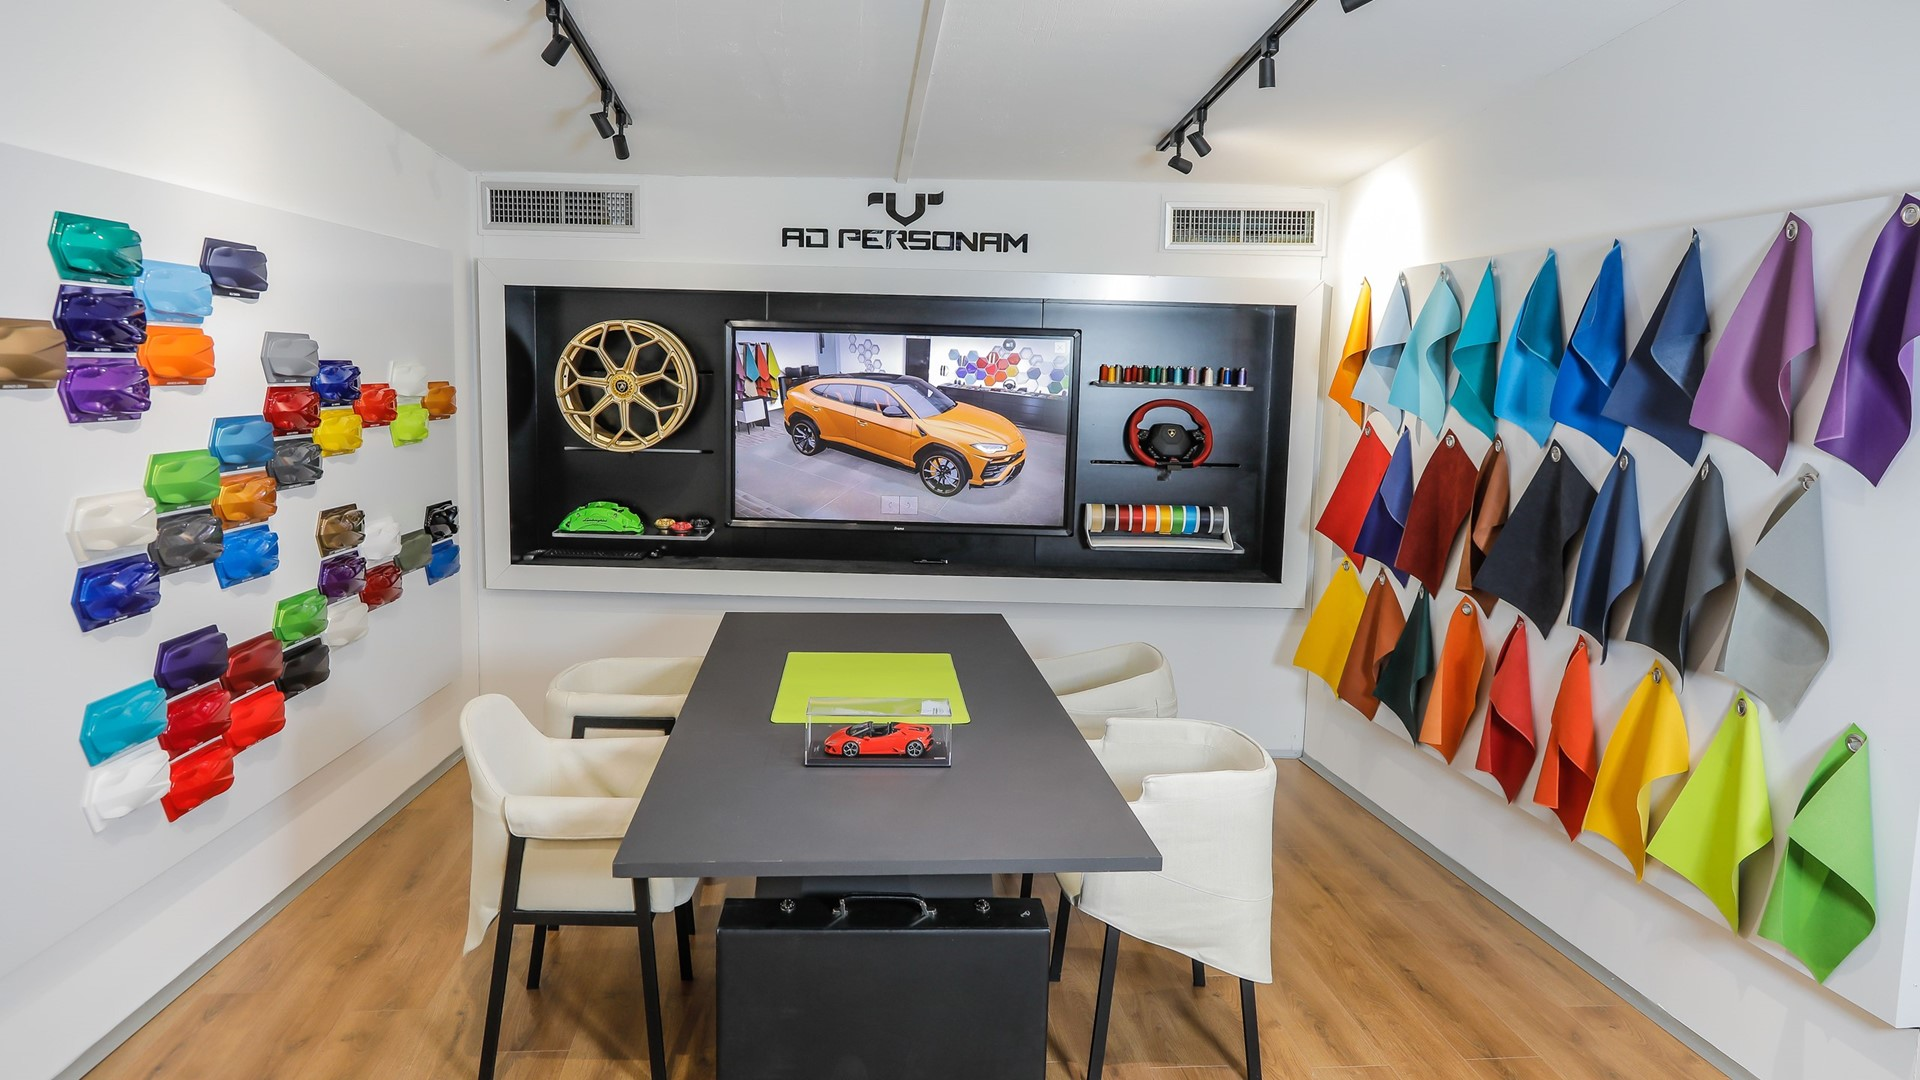 Lamborghini Lounge returns to Porto Cervo: live premier of Huracán EVO RWD Spyder with an exclusive Colours and Stars dinner by Mauro Colagreco. - Image 4